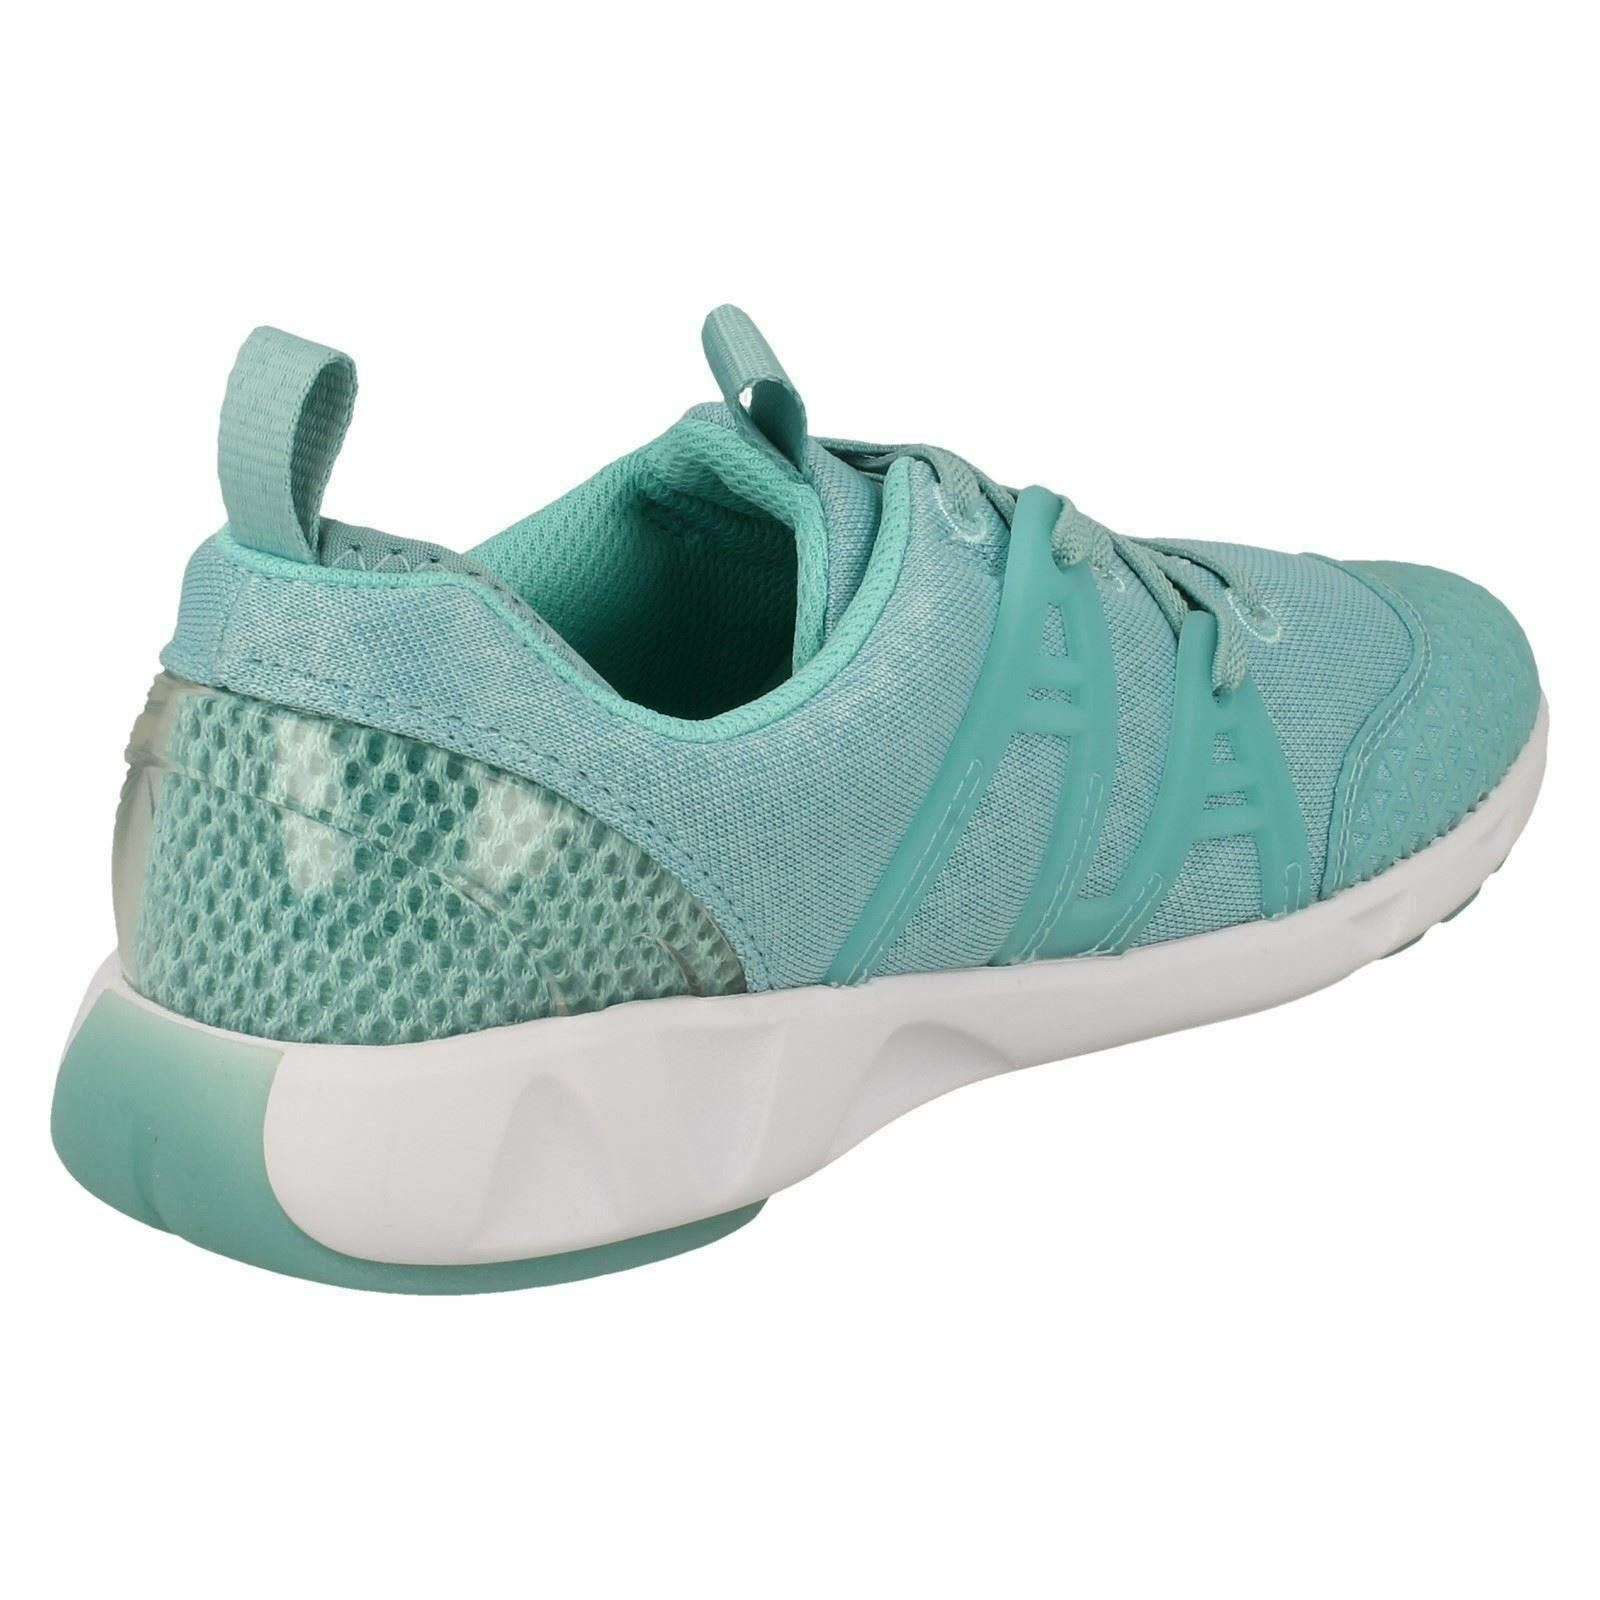 LUMINOUS GLO CLARKS GIRLS SLIP ON CASUAL SPORTS EVERYDAY SPORTY TRAINERS SHOES